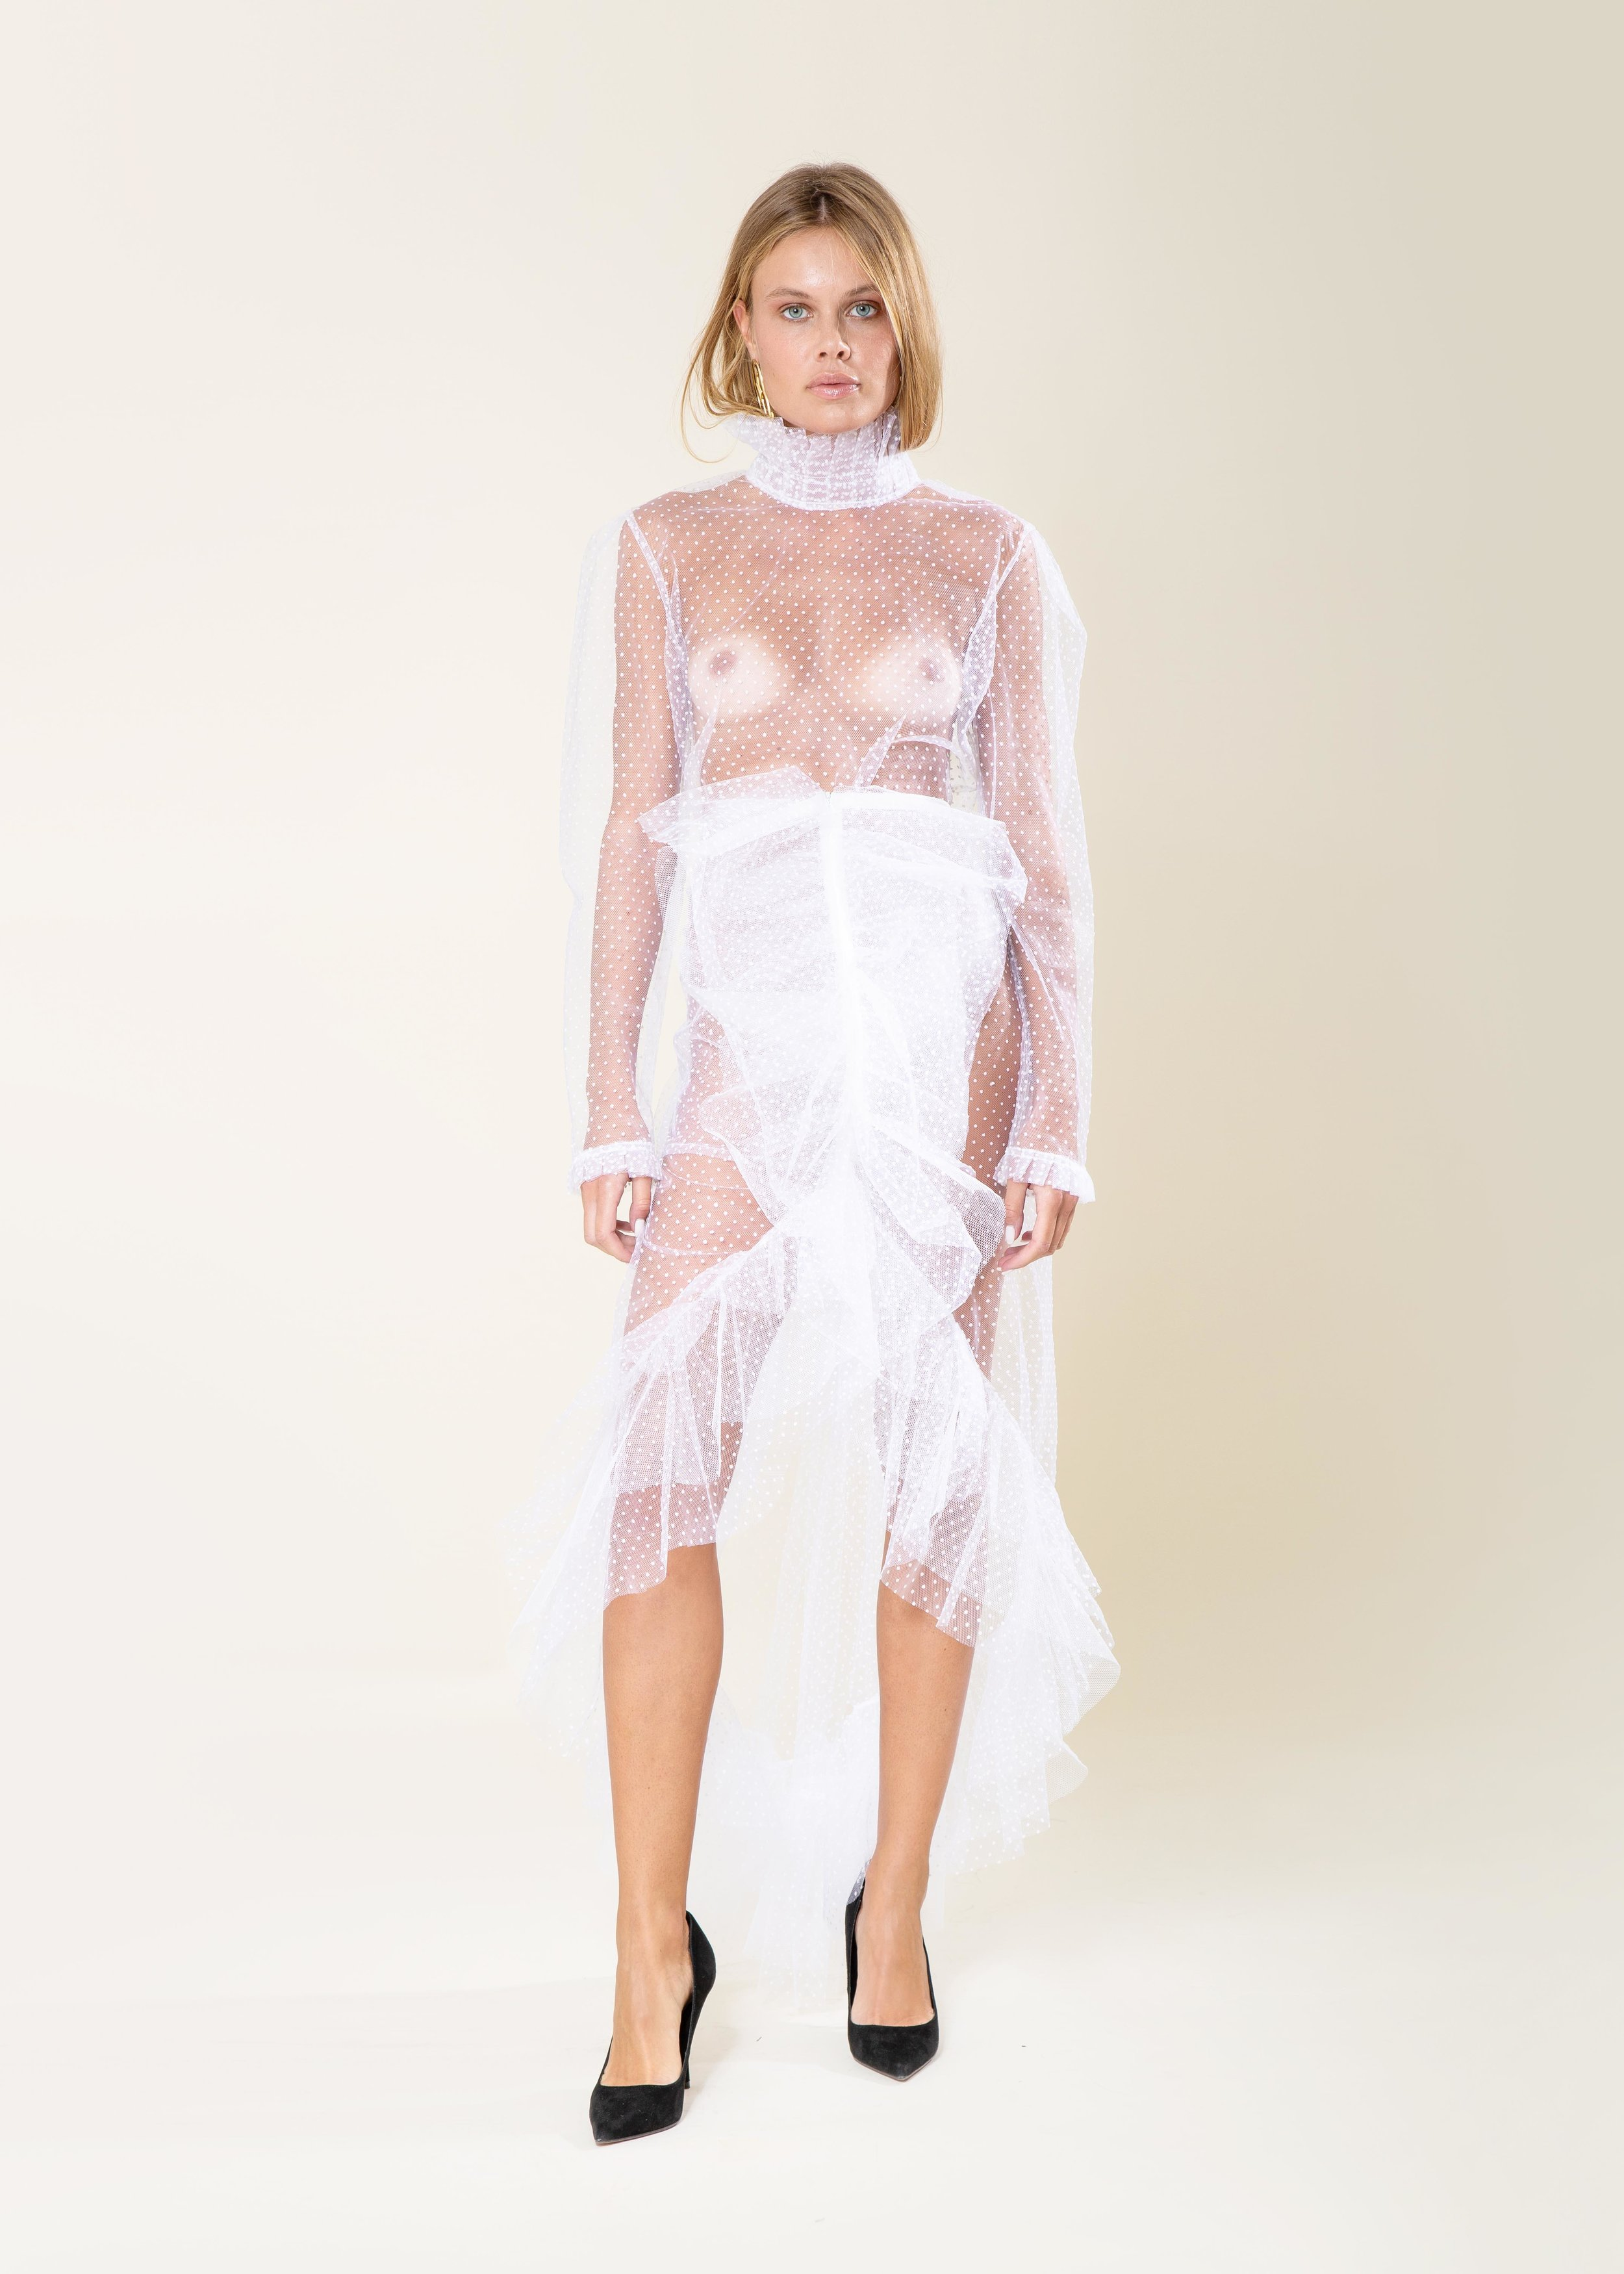 COMPLETE THE LOOK - Nora Tulle Top USD 268